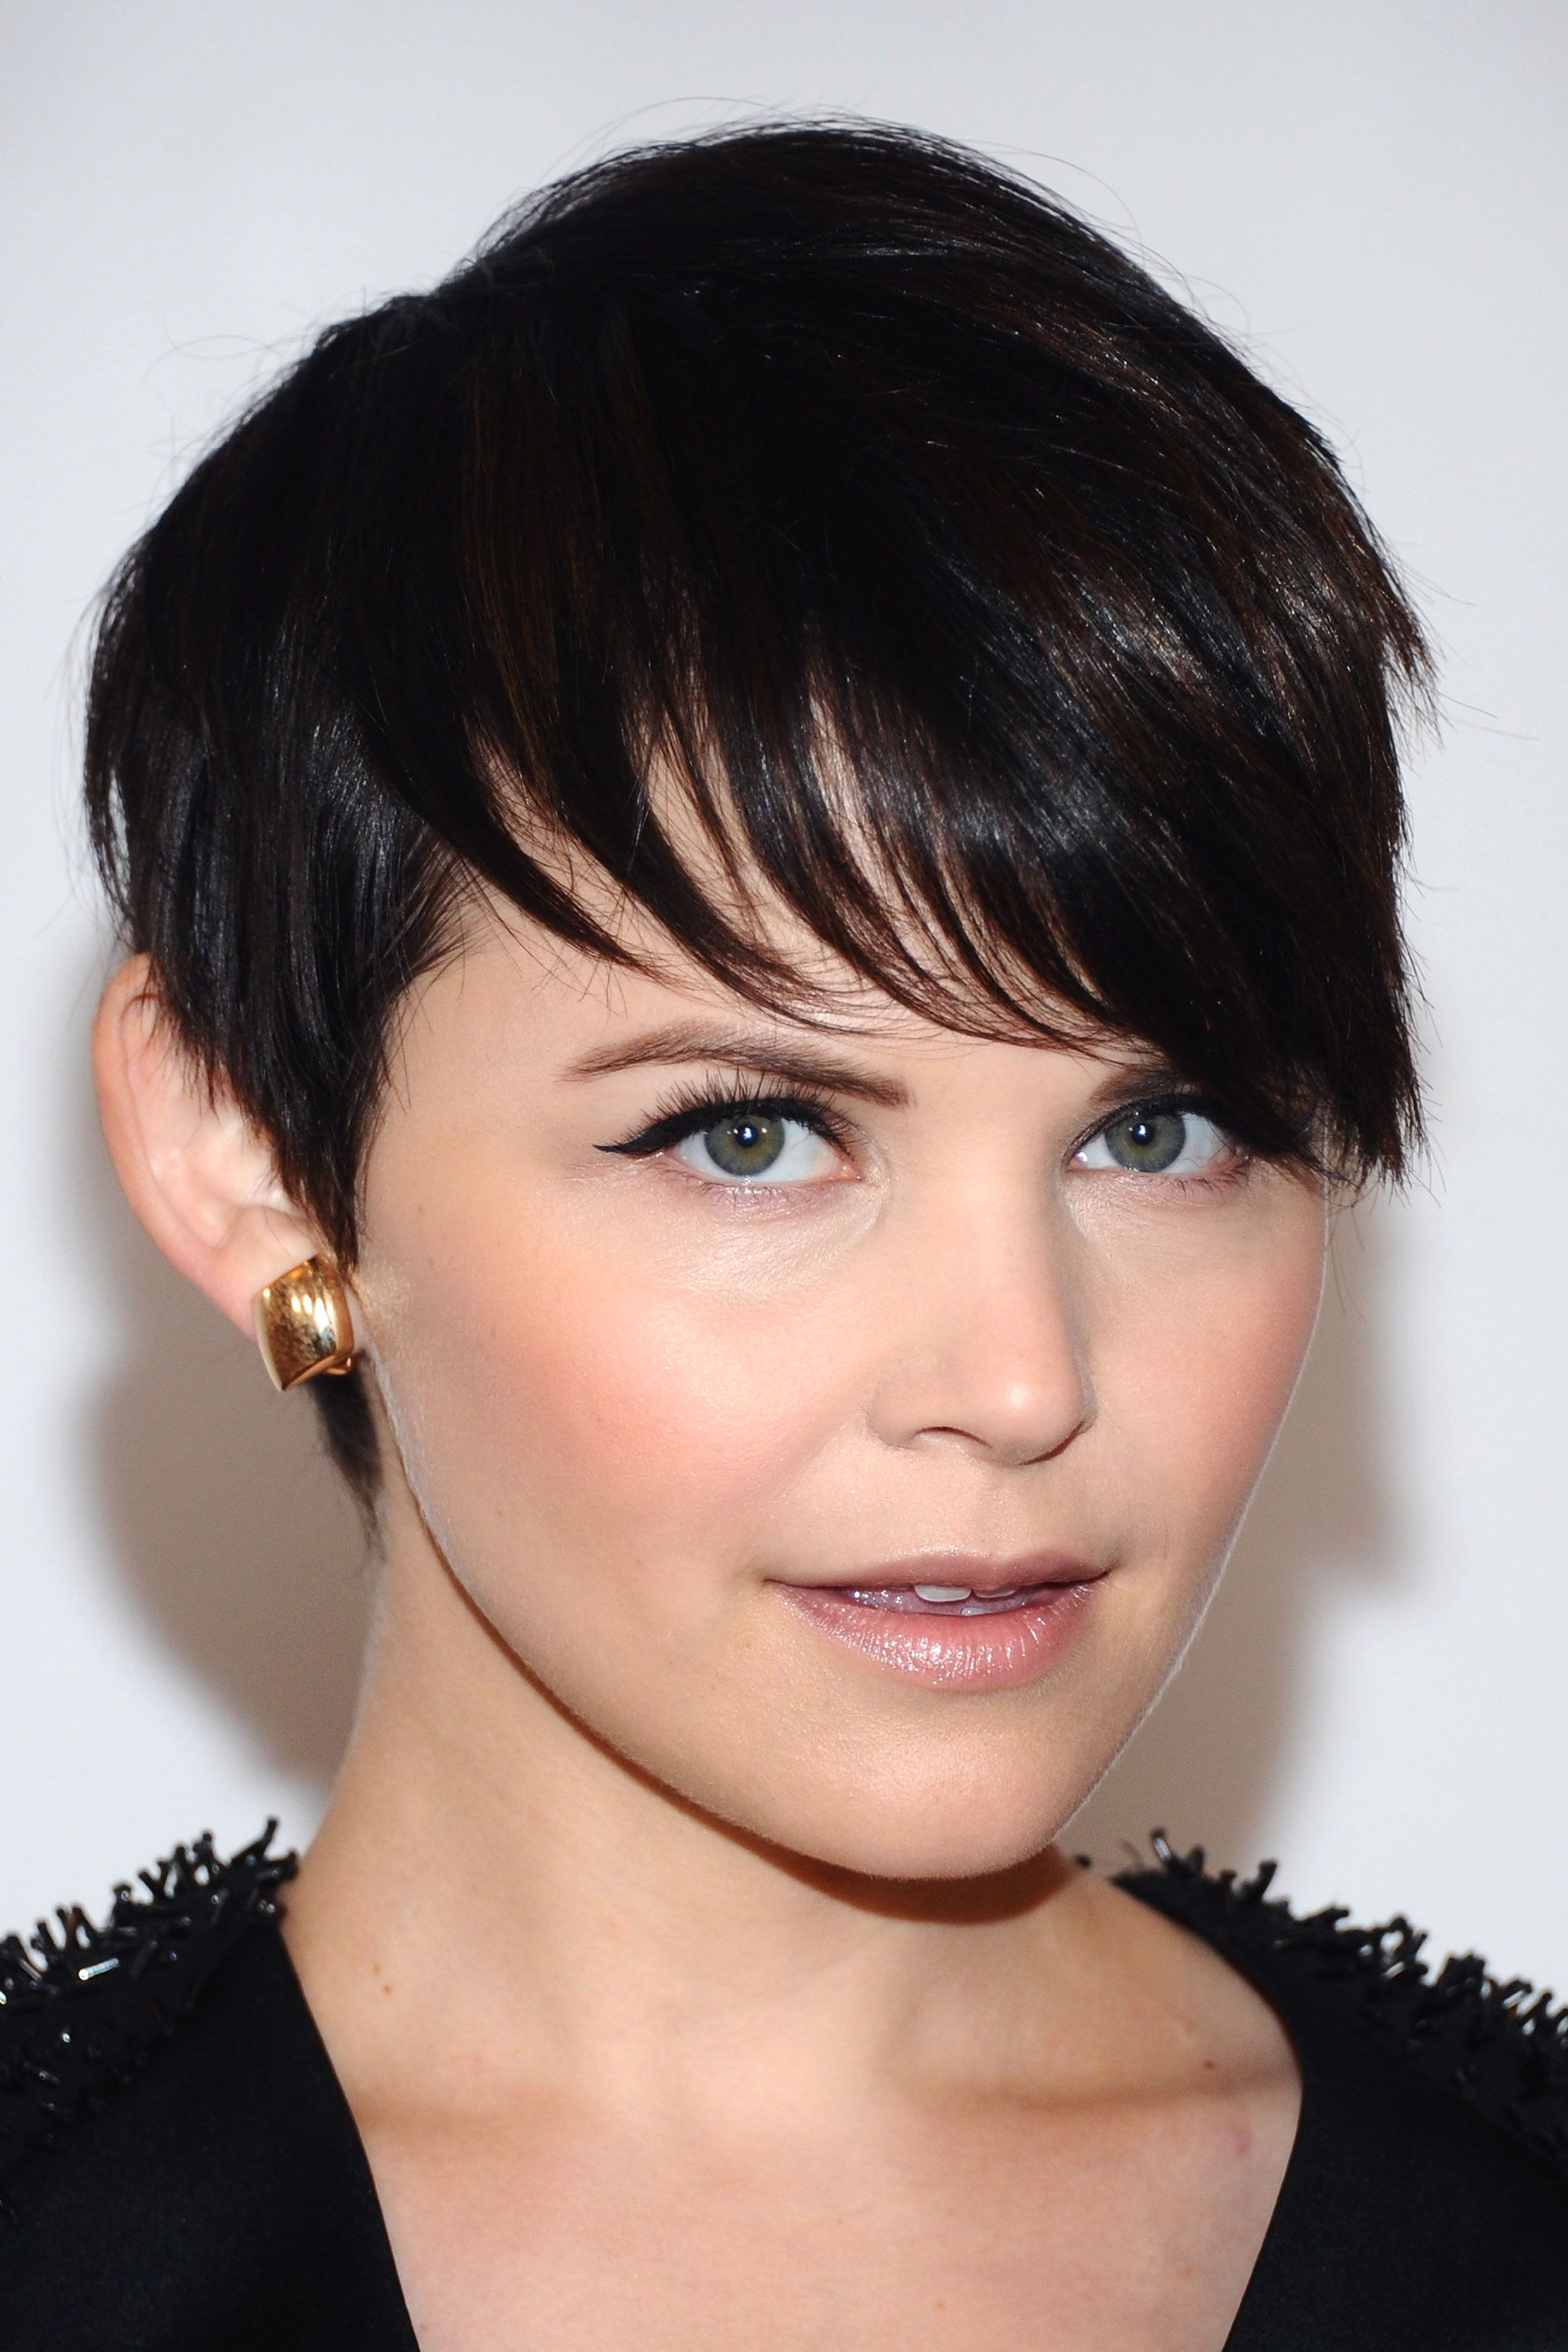 Short Shaggy Haircuts Women 50 Short Hairstyles - 40 pixie cuts we love for 2017 short pixie hairstyles from classic to edgy bazaar